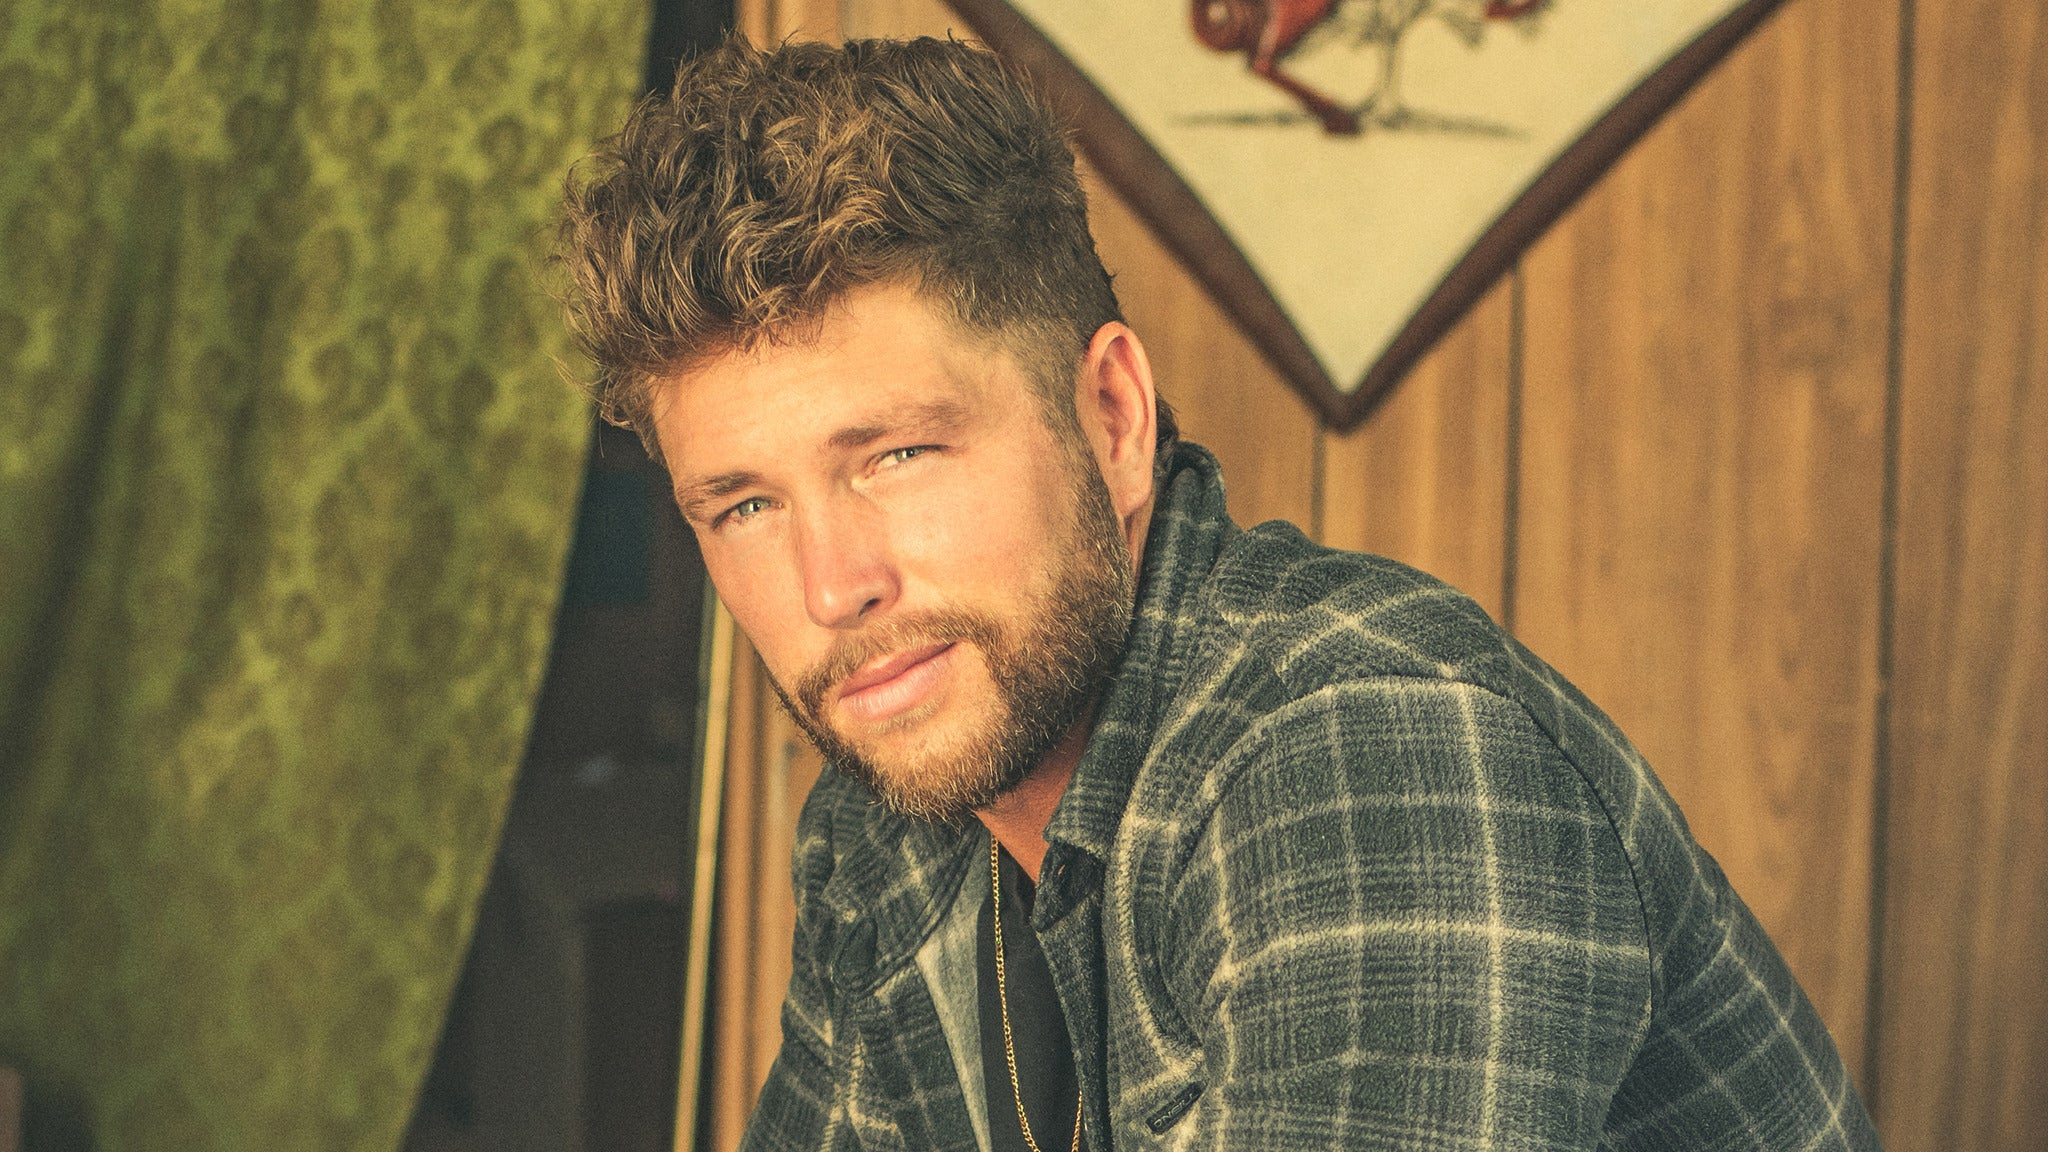 Chris Lane - VIP Experience Upgrade at TaxSlayer Center